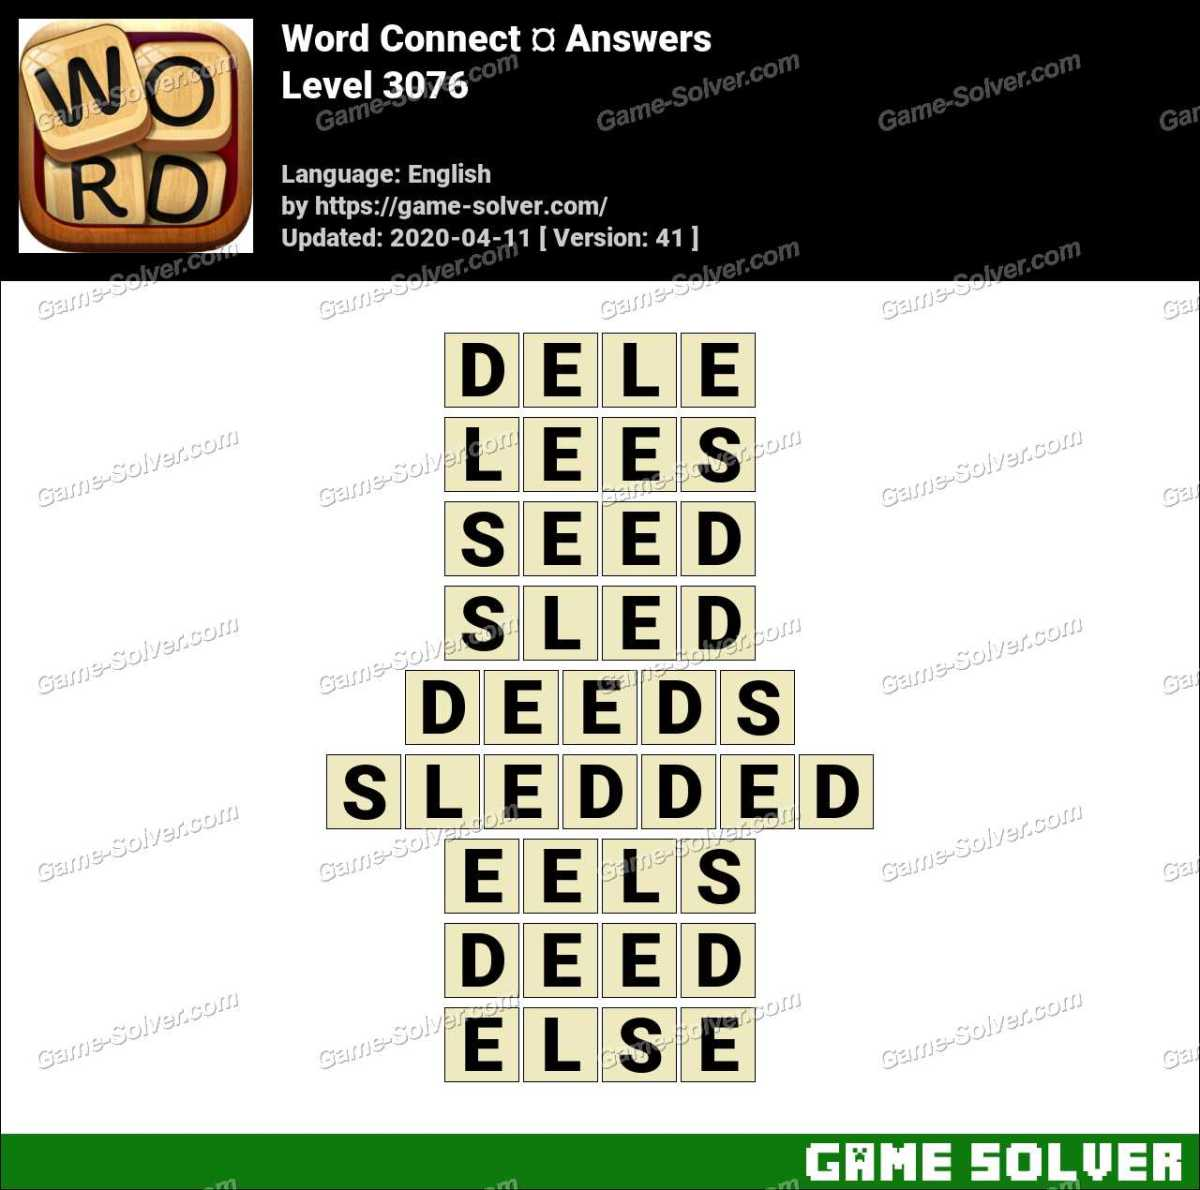 Word Connect Level 3076 Answers